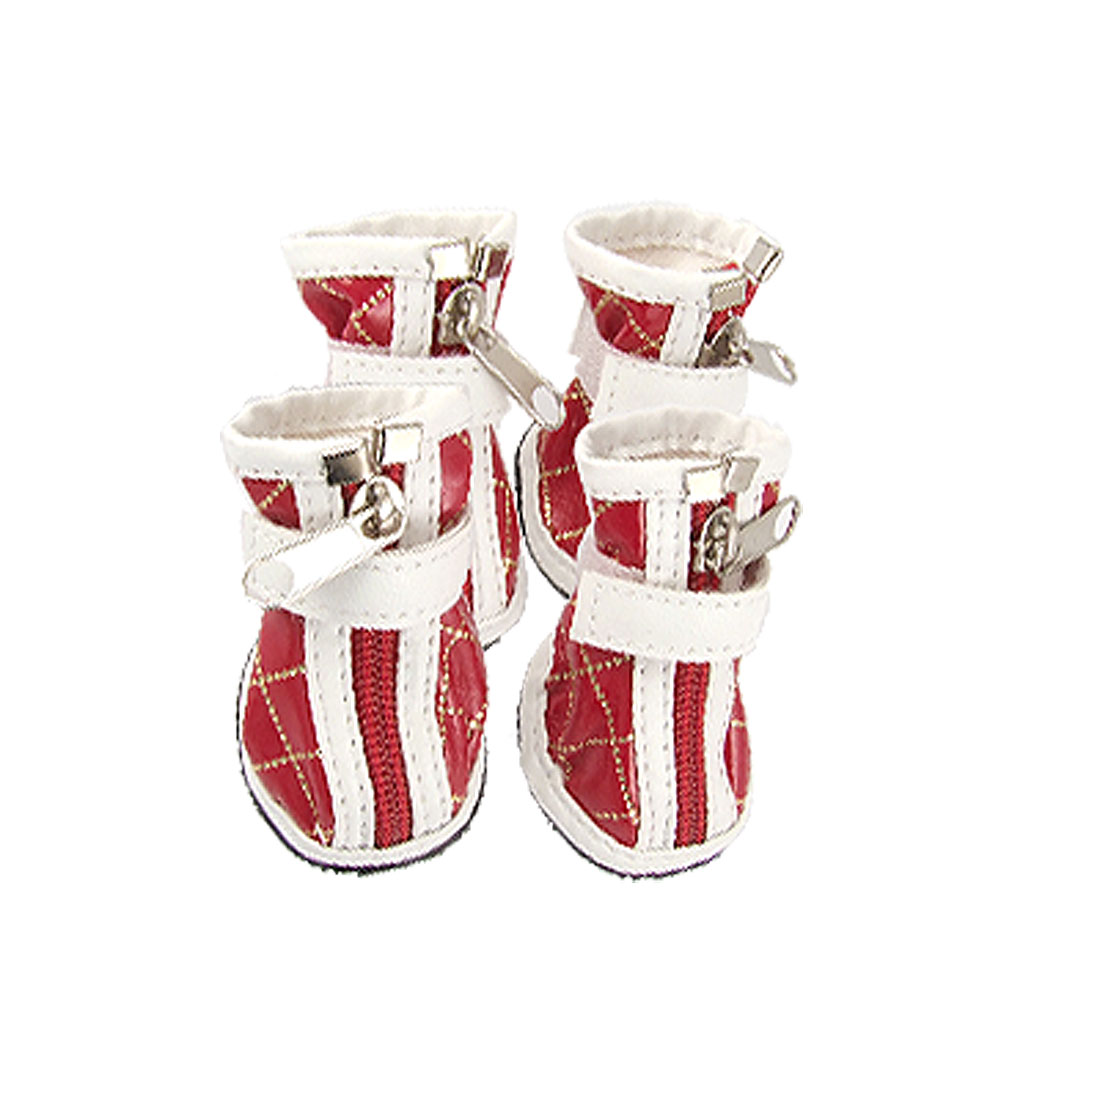 4 Pcs Pet Dog Red White Faux Leather Vamp Zipped Boots Shoes Size 3